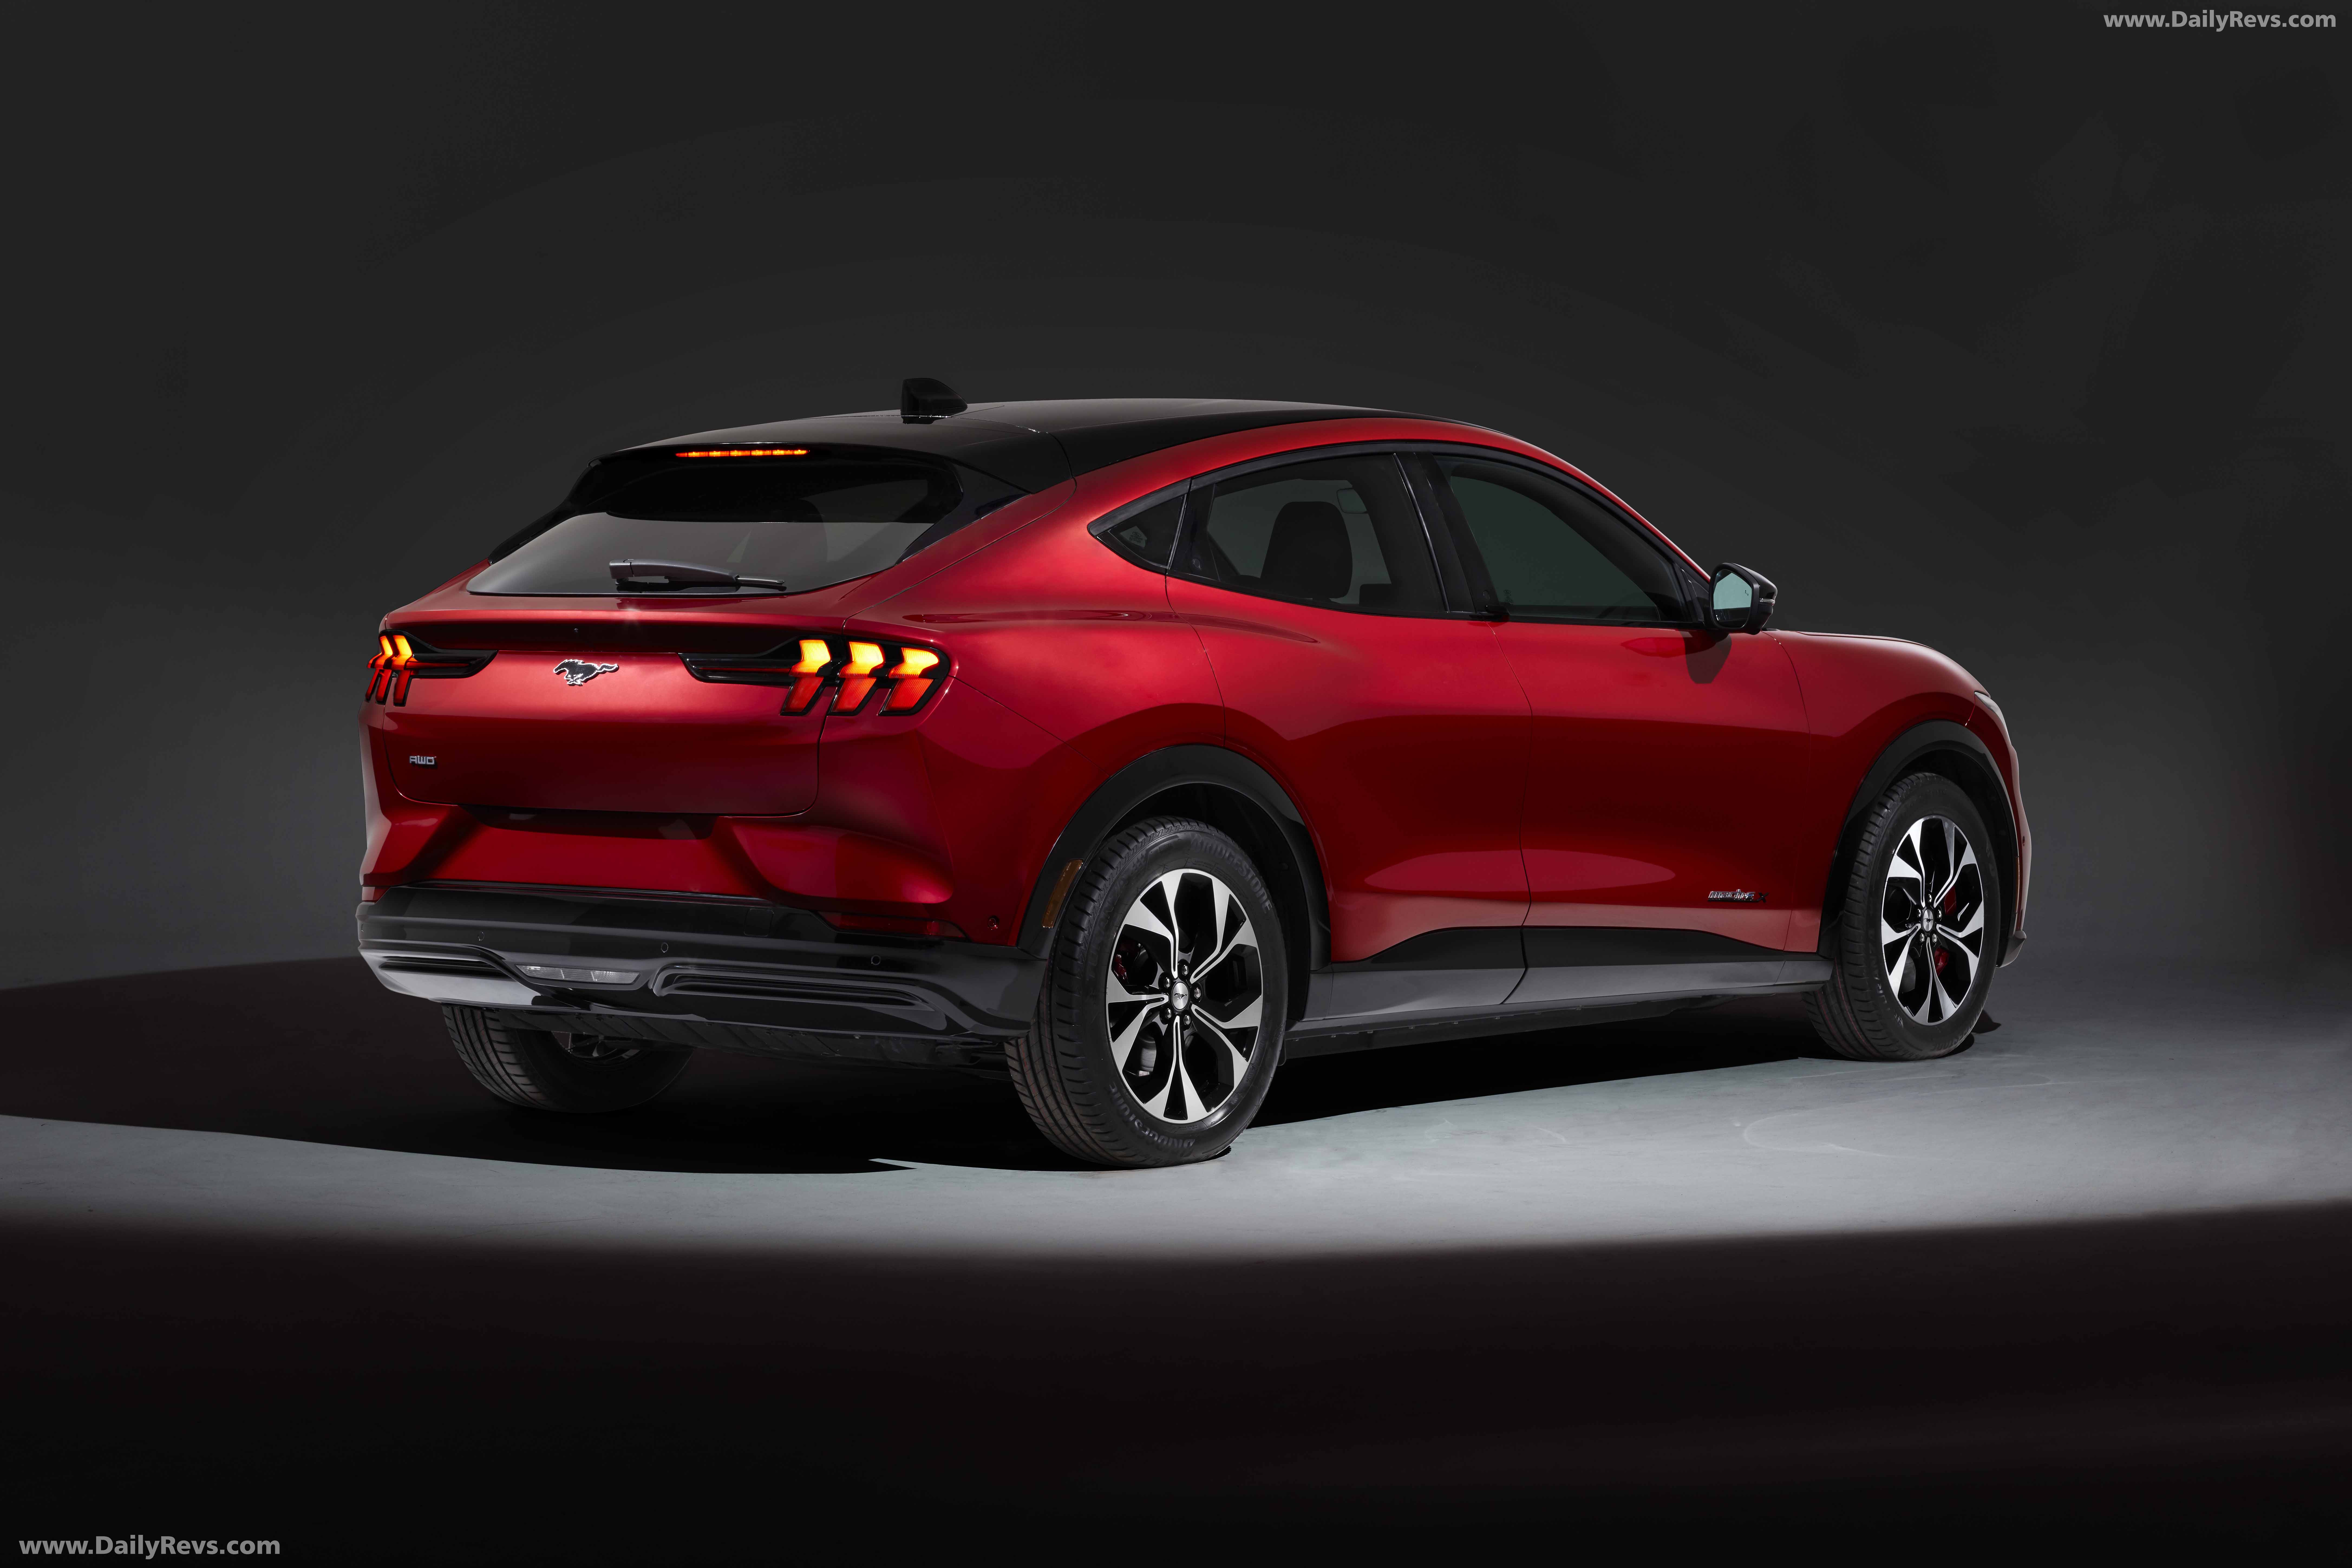 2021 Ford Mustang Mach-E full